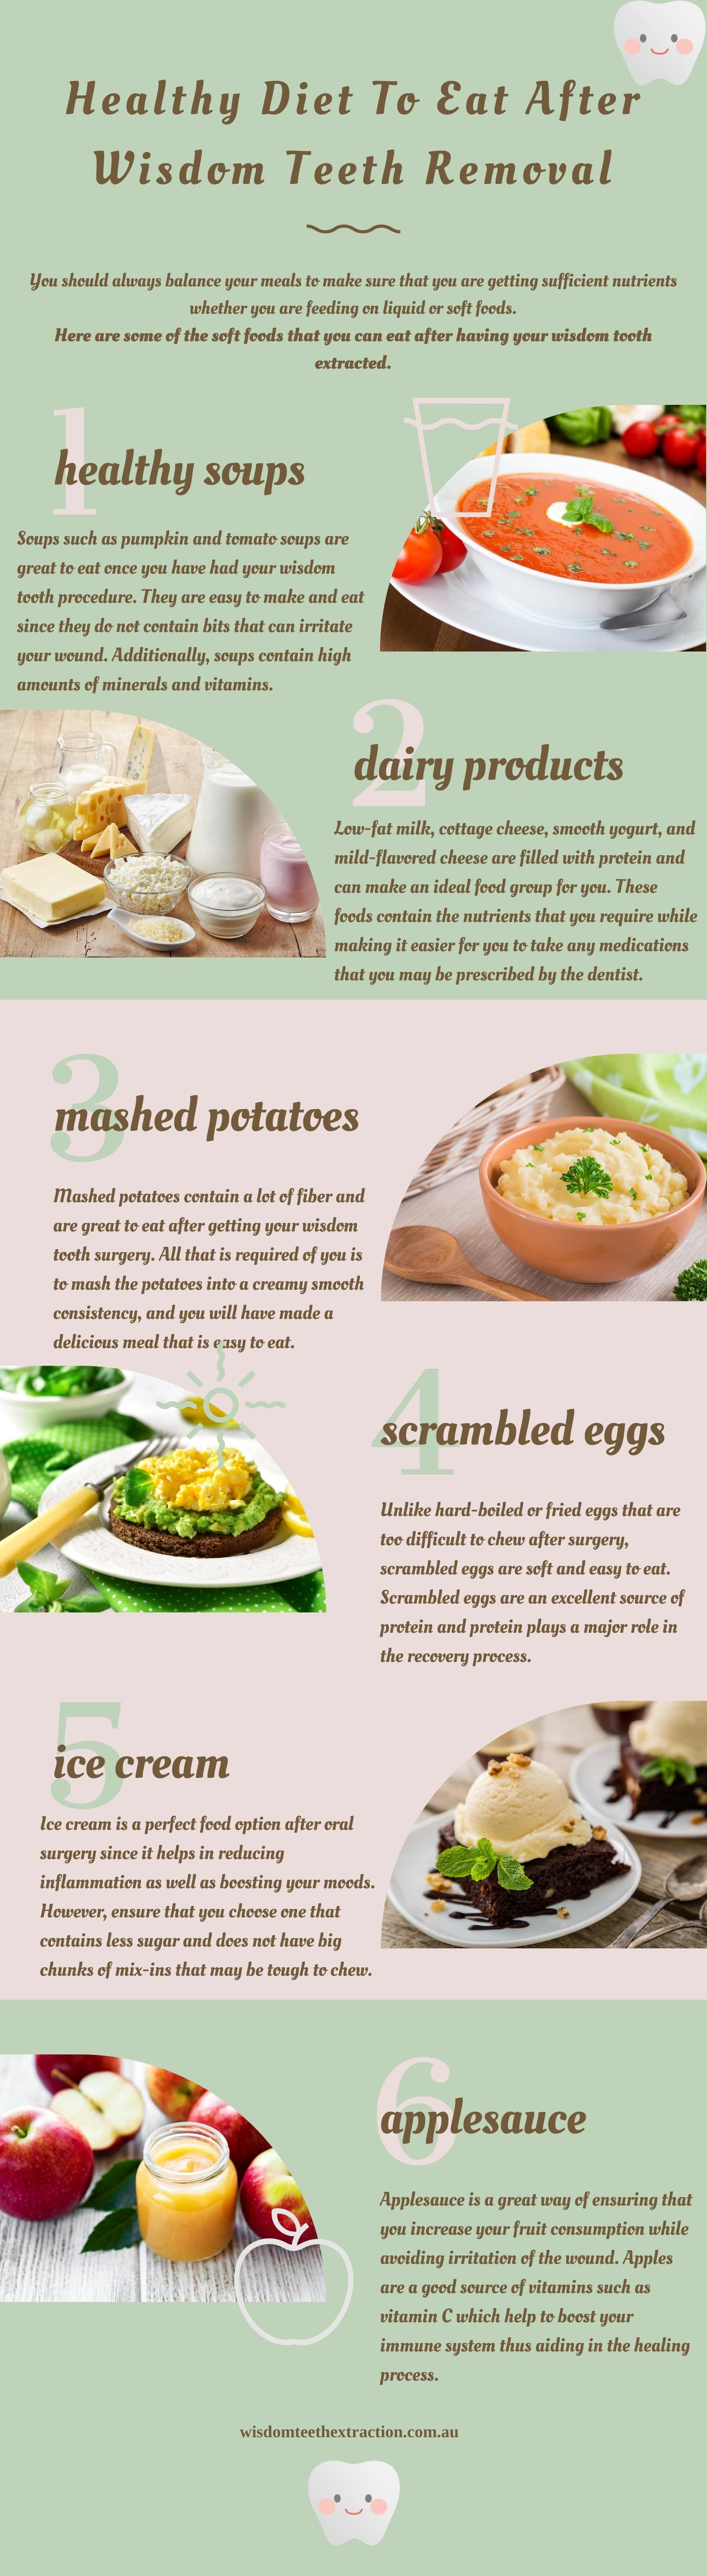 Food Tips After Wisdom Tooth Removal After Wisdom Teeth Removal Wisdom Teeth Wisdom Teeth Removal